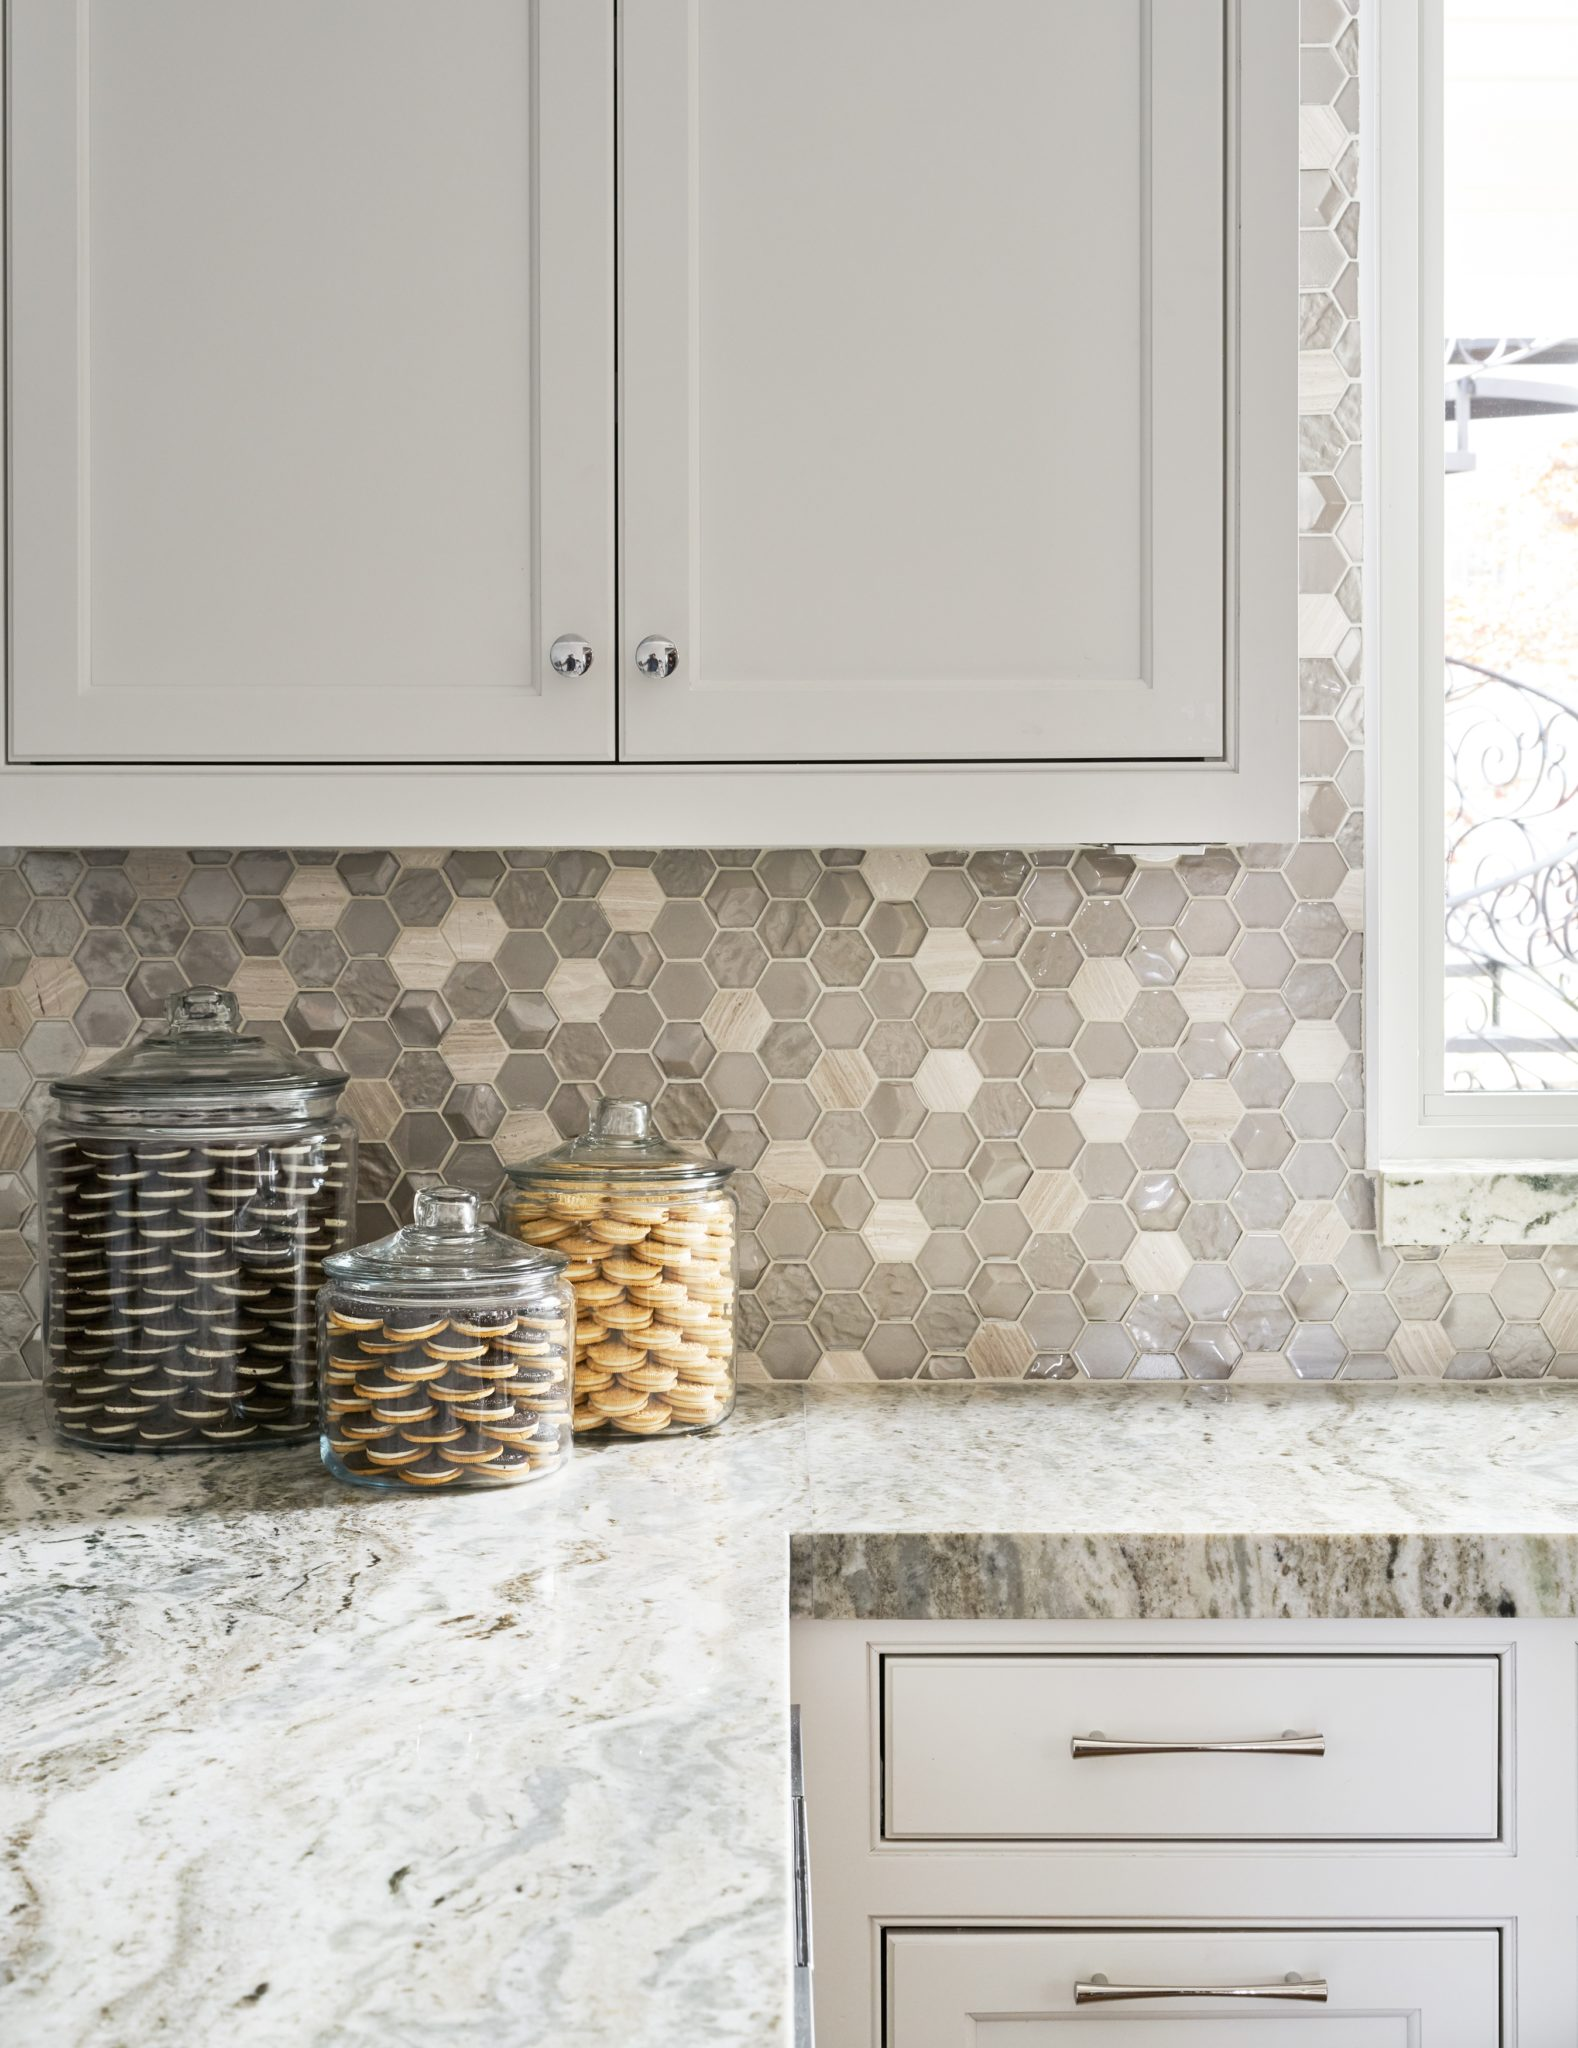 This kitchen features waterfall edges and a fabulous mosaic tile backsplash. by Wesley-Wayne Interiors